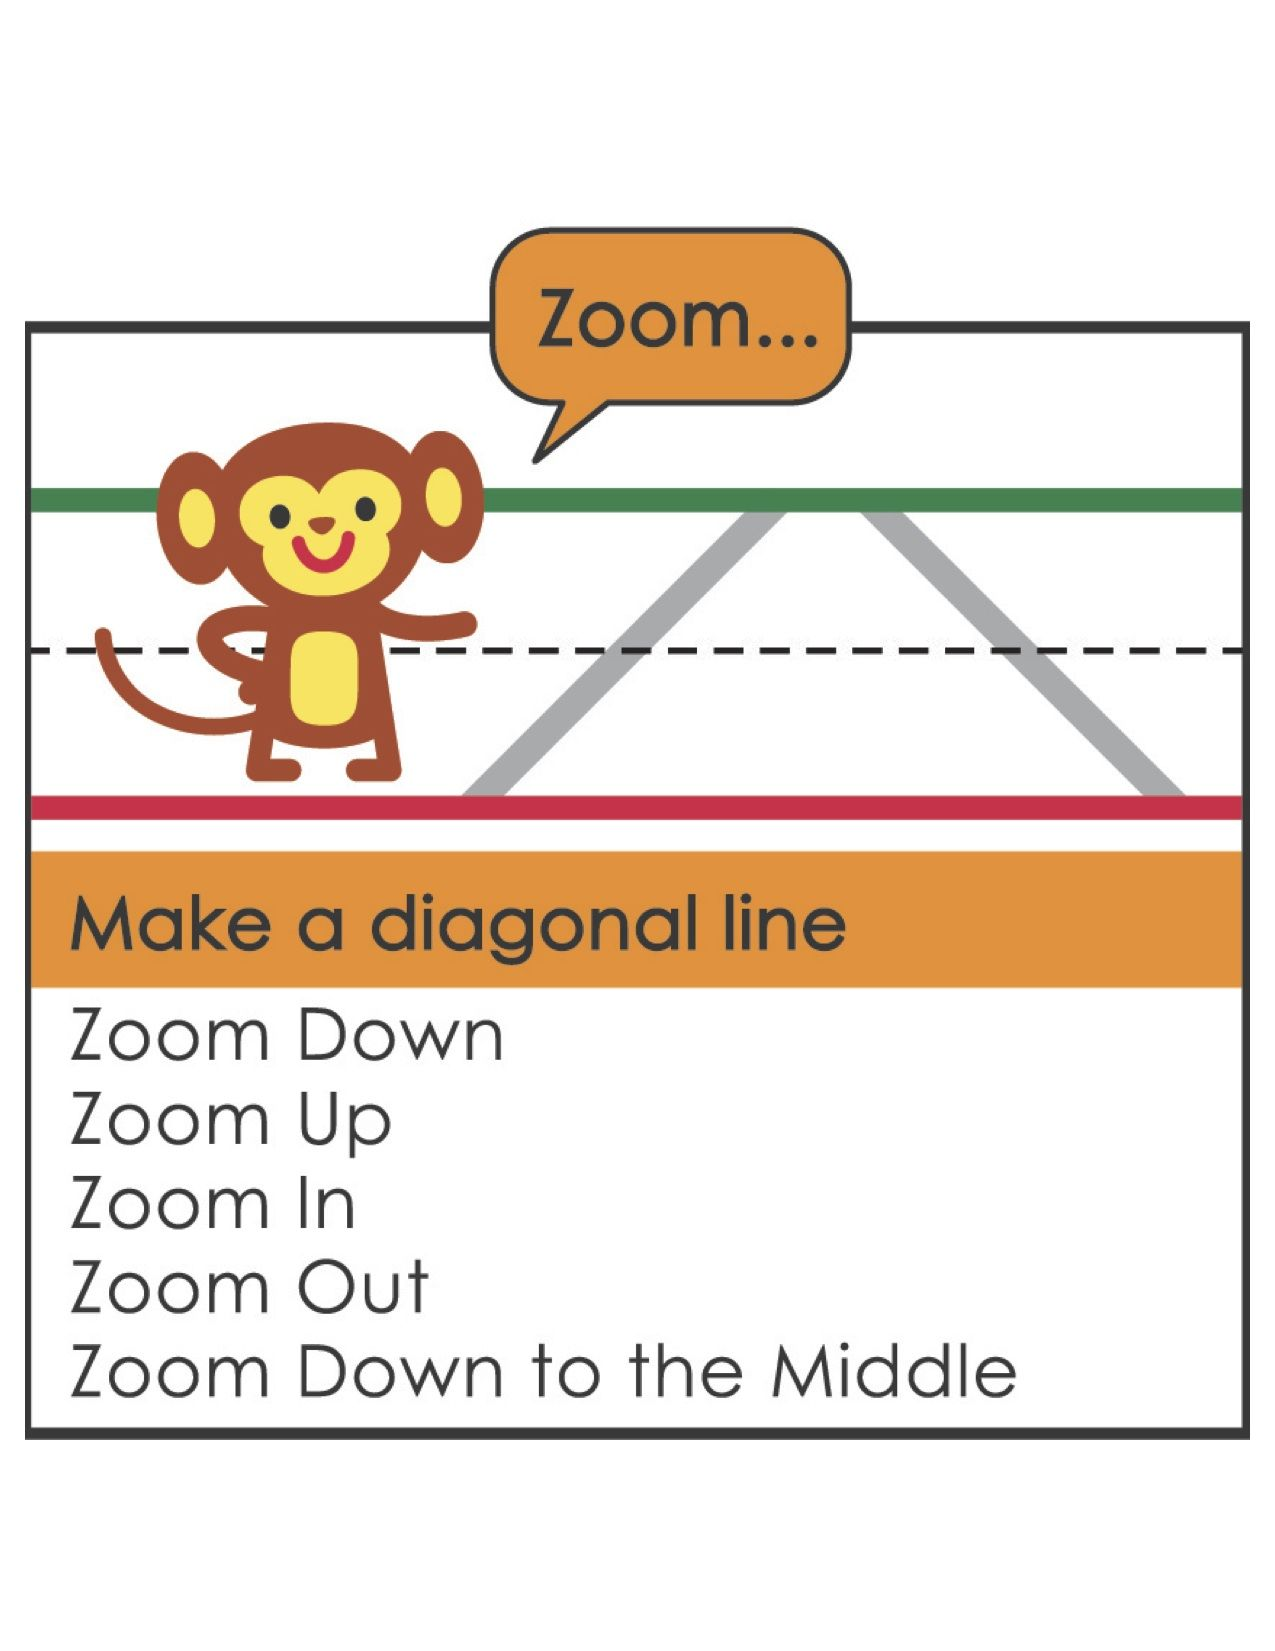 Zoom Teaches Children To Make A Diagonal Line When Using